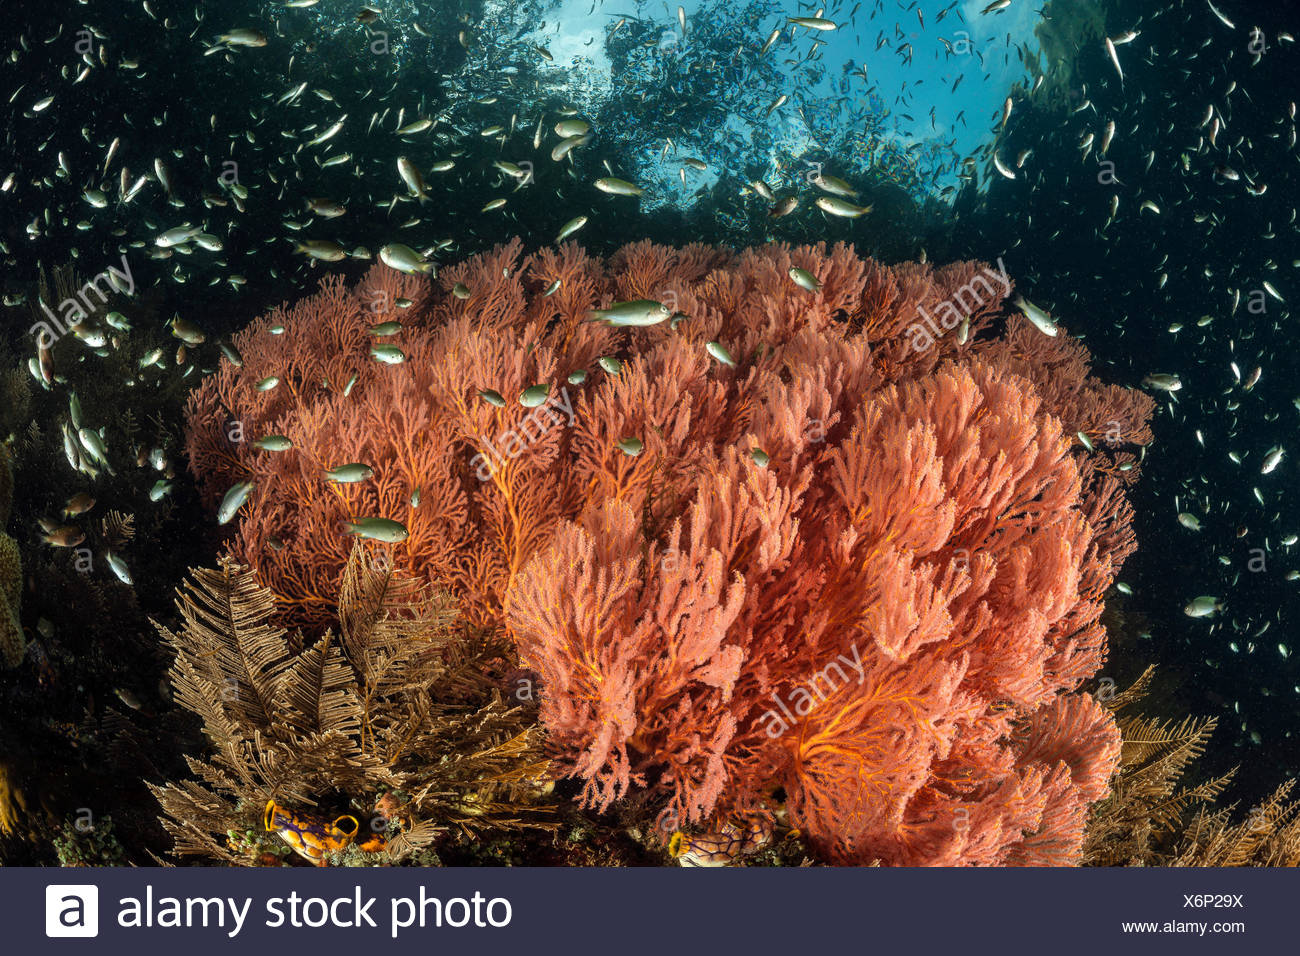 Corals growing near Mangroves, Melithaea sp., Raja Ampat, West Papua, Indonesia - Stock Image